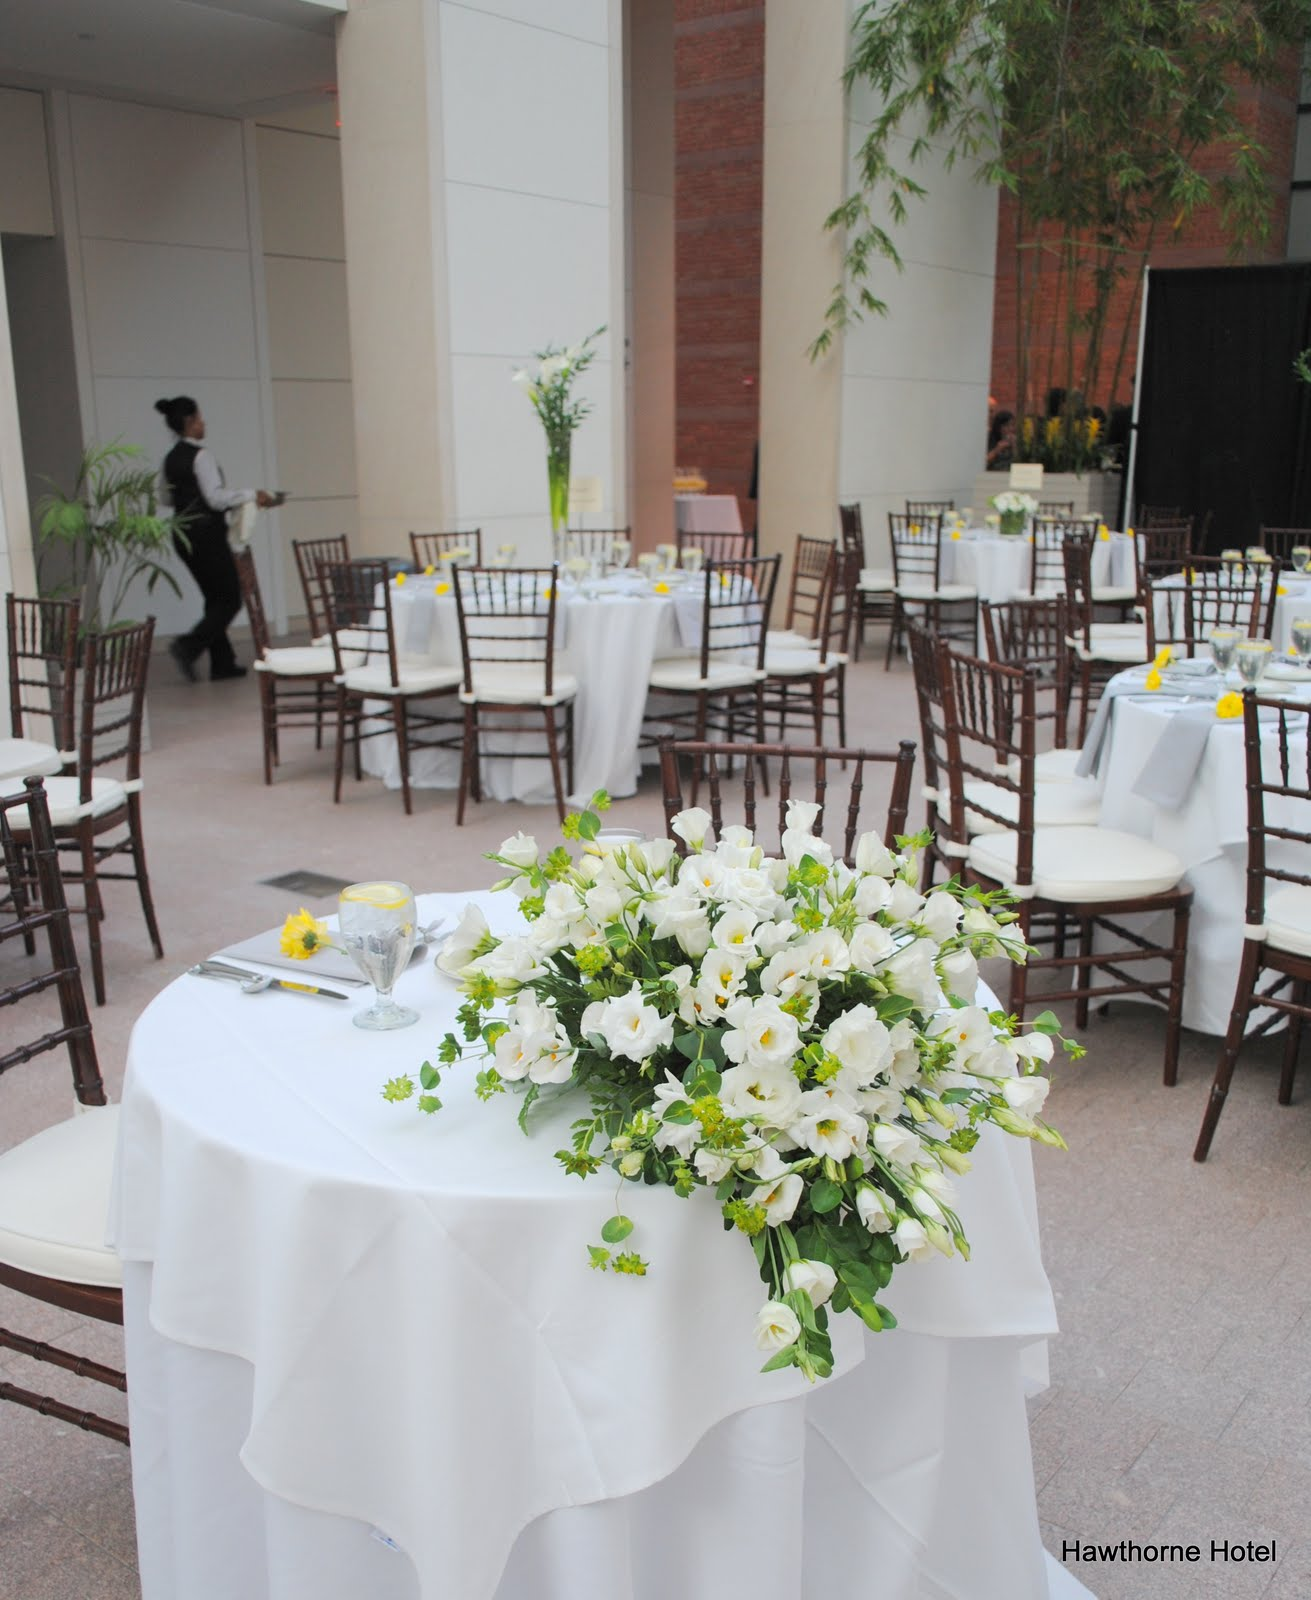 this past saturday we provided service for unique wedding at the peabody essex museum here are some photos of the set up in the atrium for your enjoyment